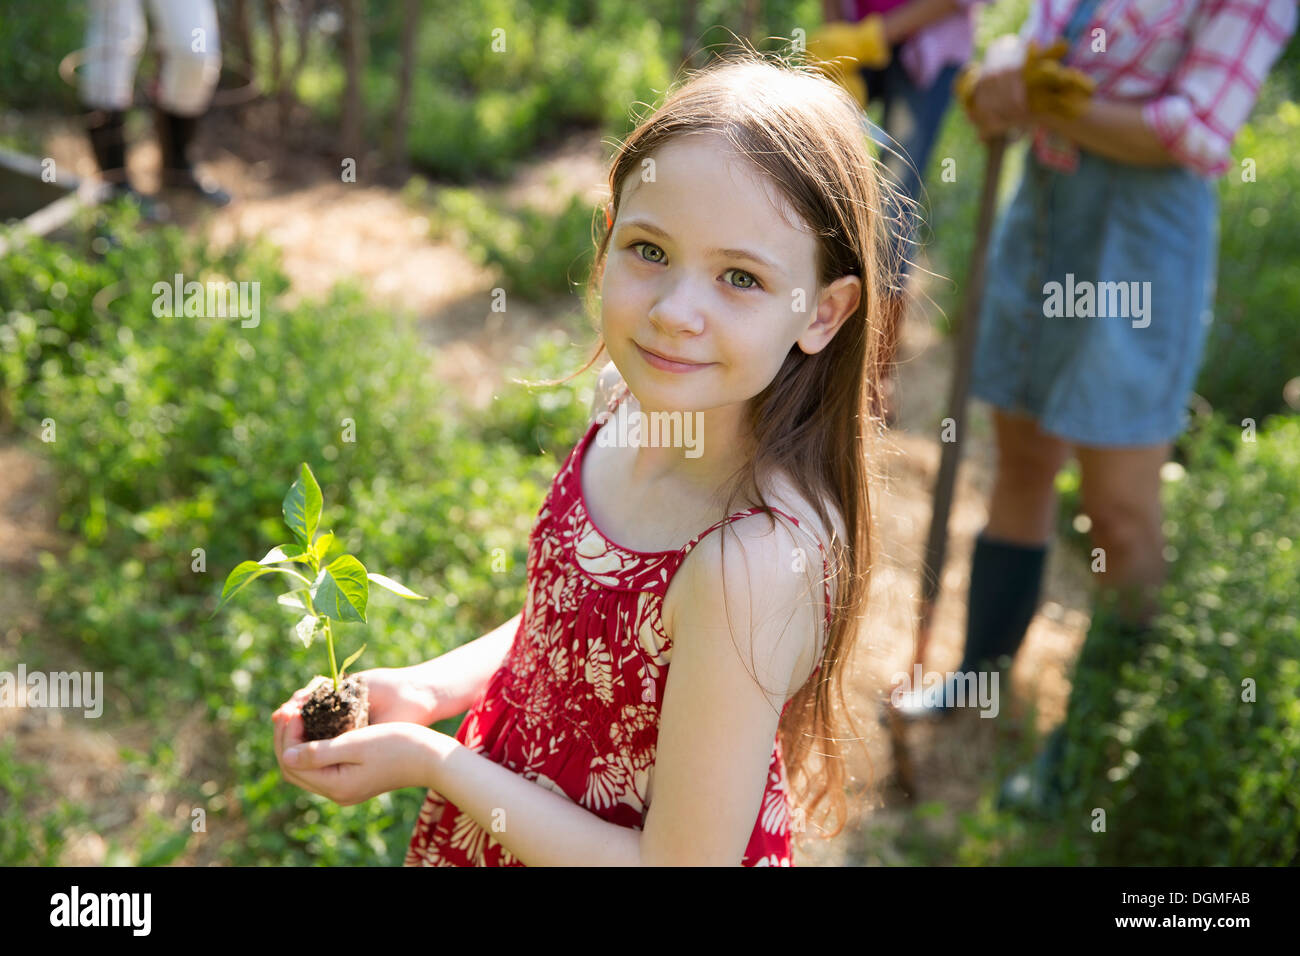 A woman and a child. One holding a young plant with green foliage and a healthy rootball in her hands. - Stock Image